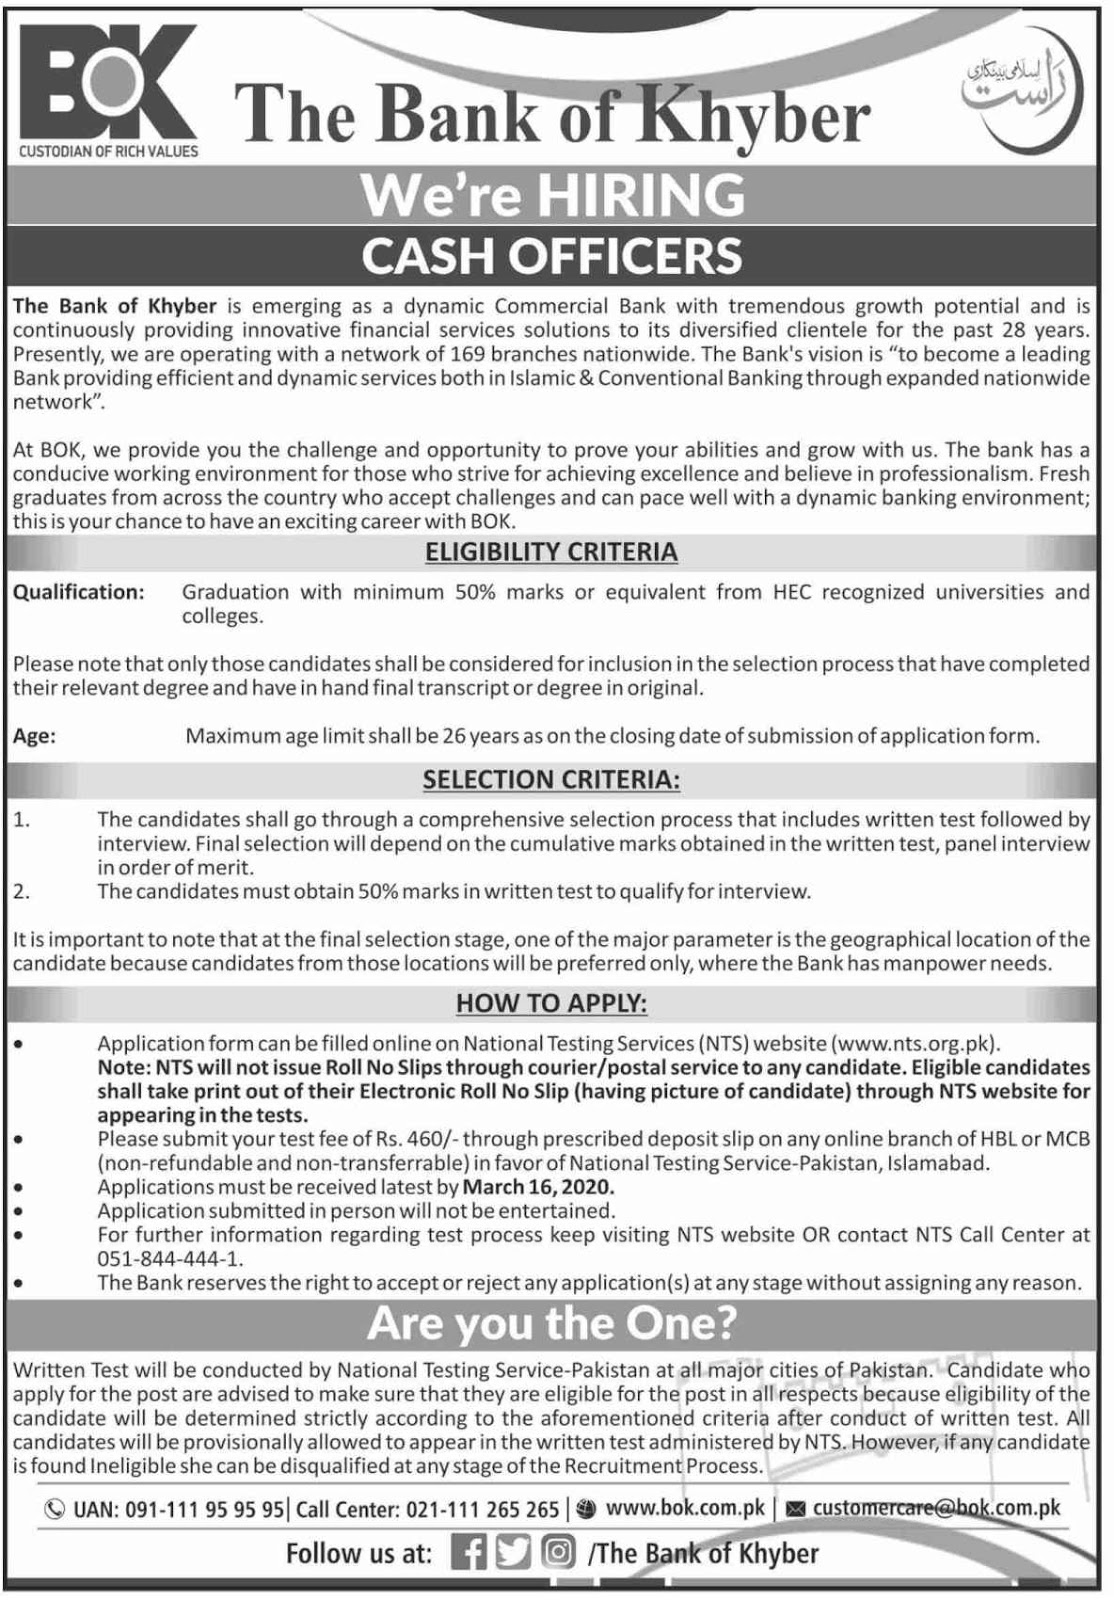 Cash Officer Jobs for All Cities in Pakistan in The Bank of Khyber BOK Jobs 2020 via NTS Testing Service